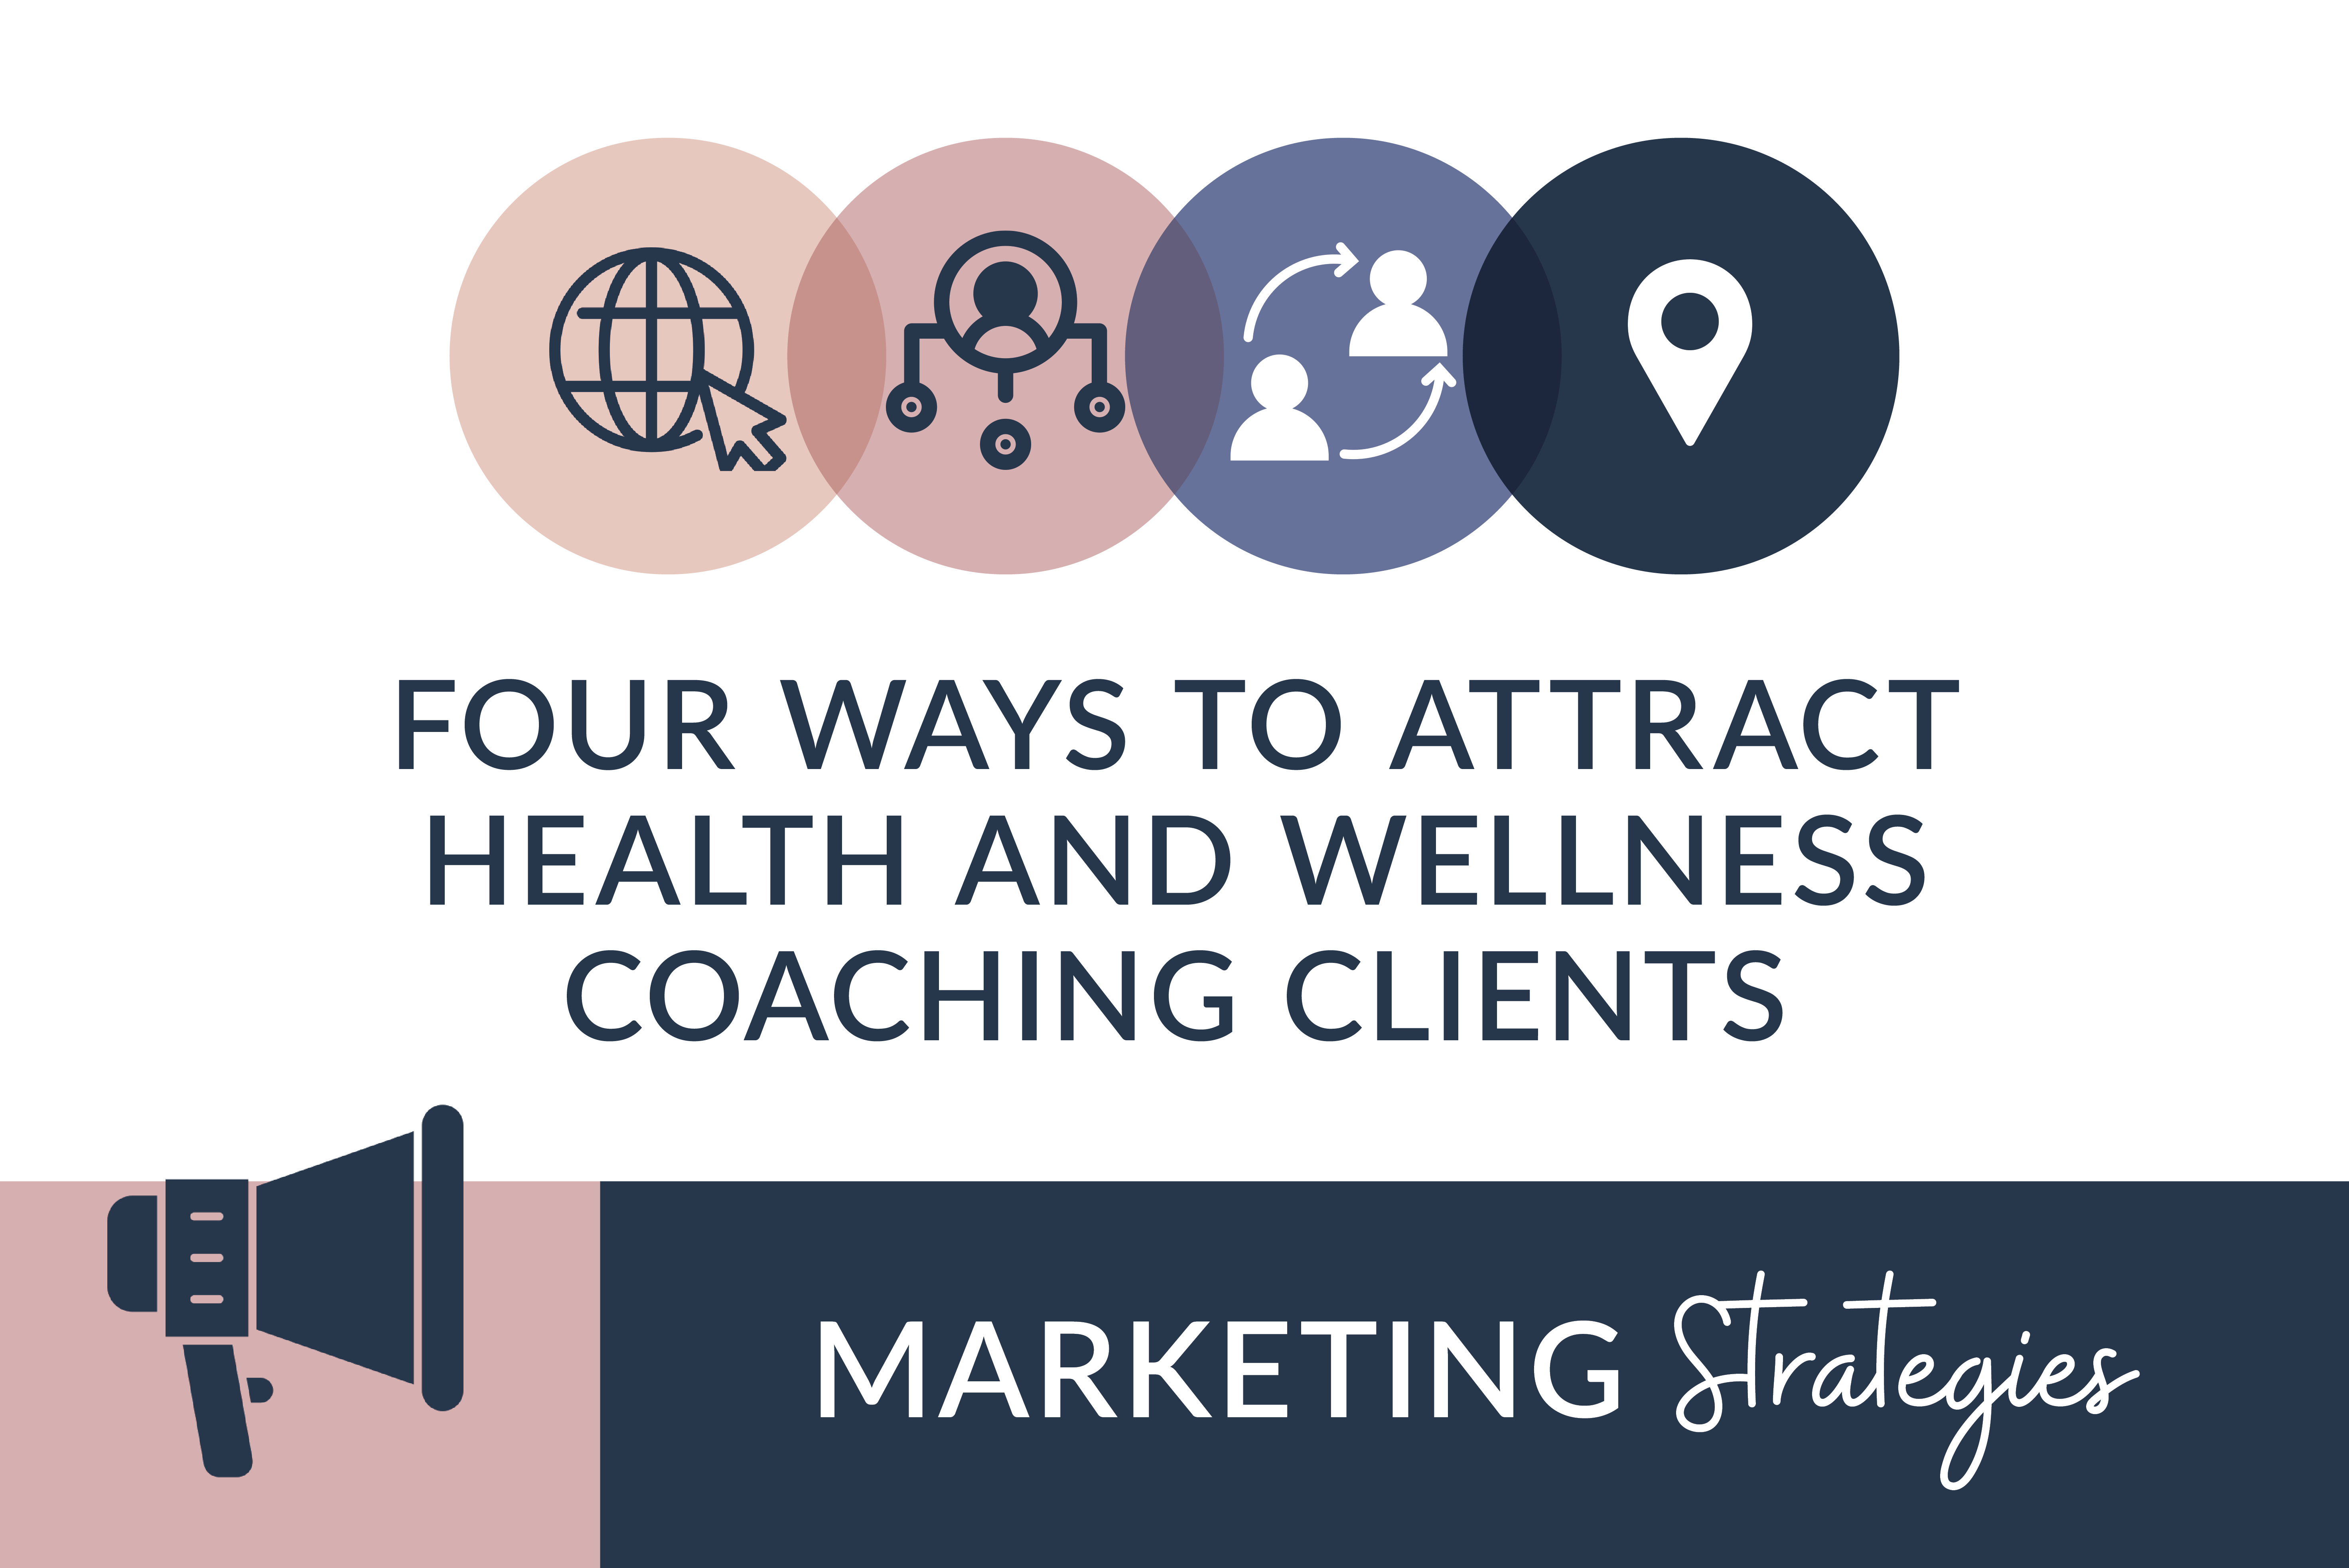 Four Ways to Attract Health and Wellness Coaching Clients